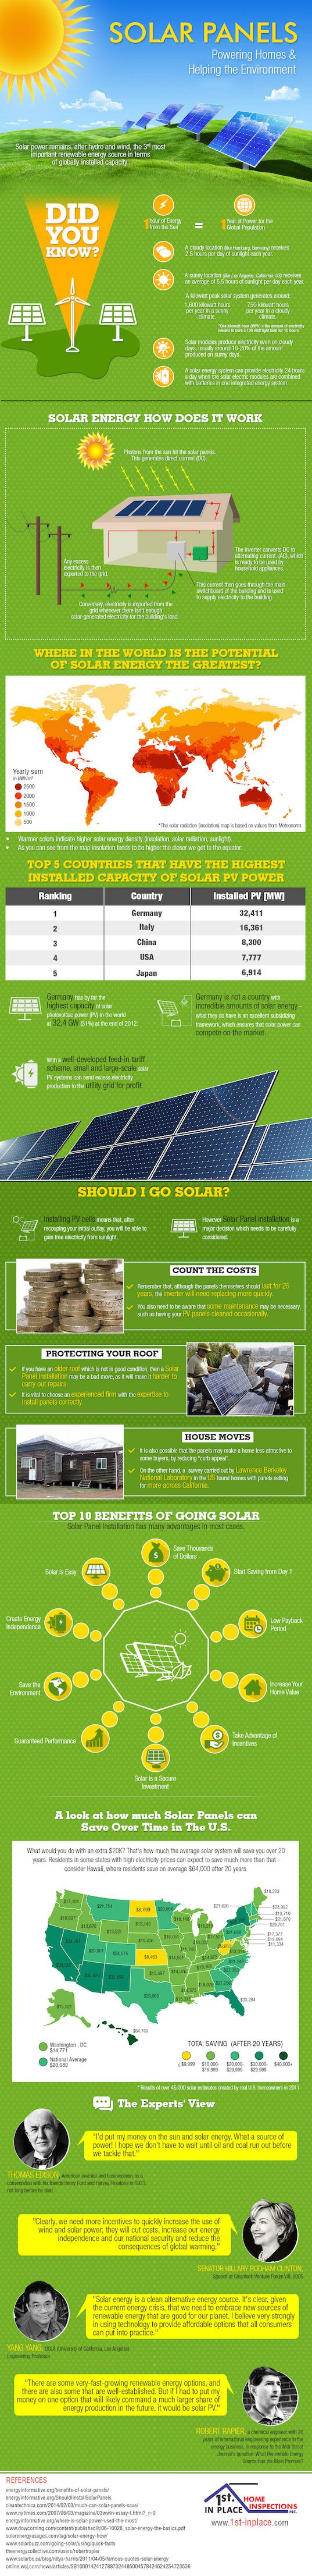 17 best images about eco solutions energy light and power on infographic learn how solar panels work and the benefits of going solar